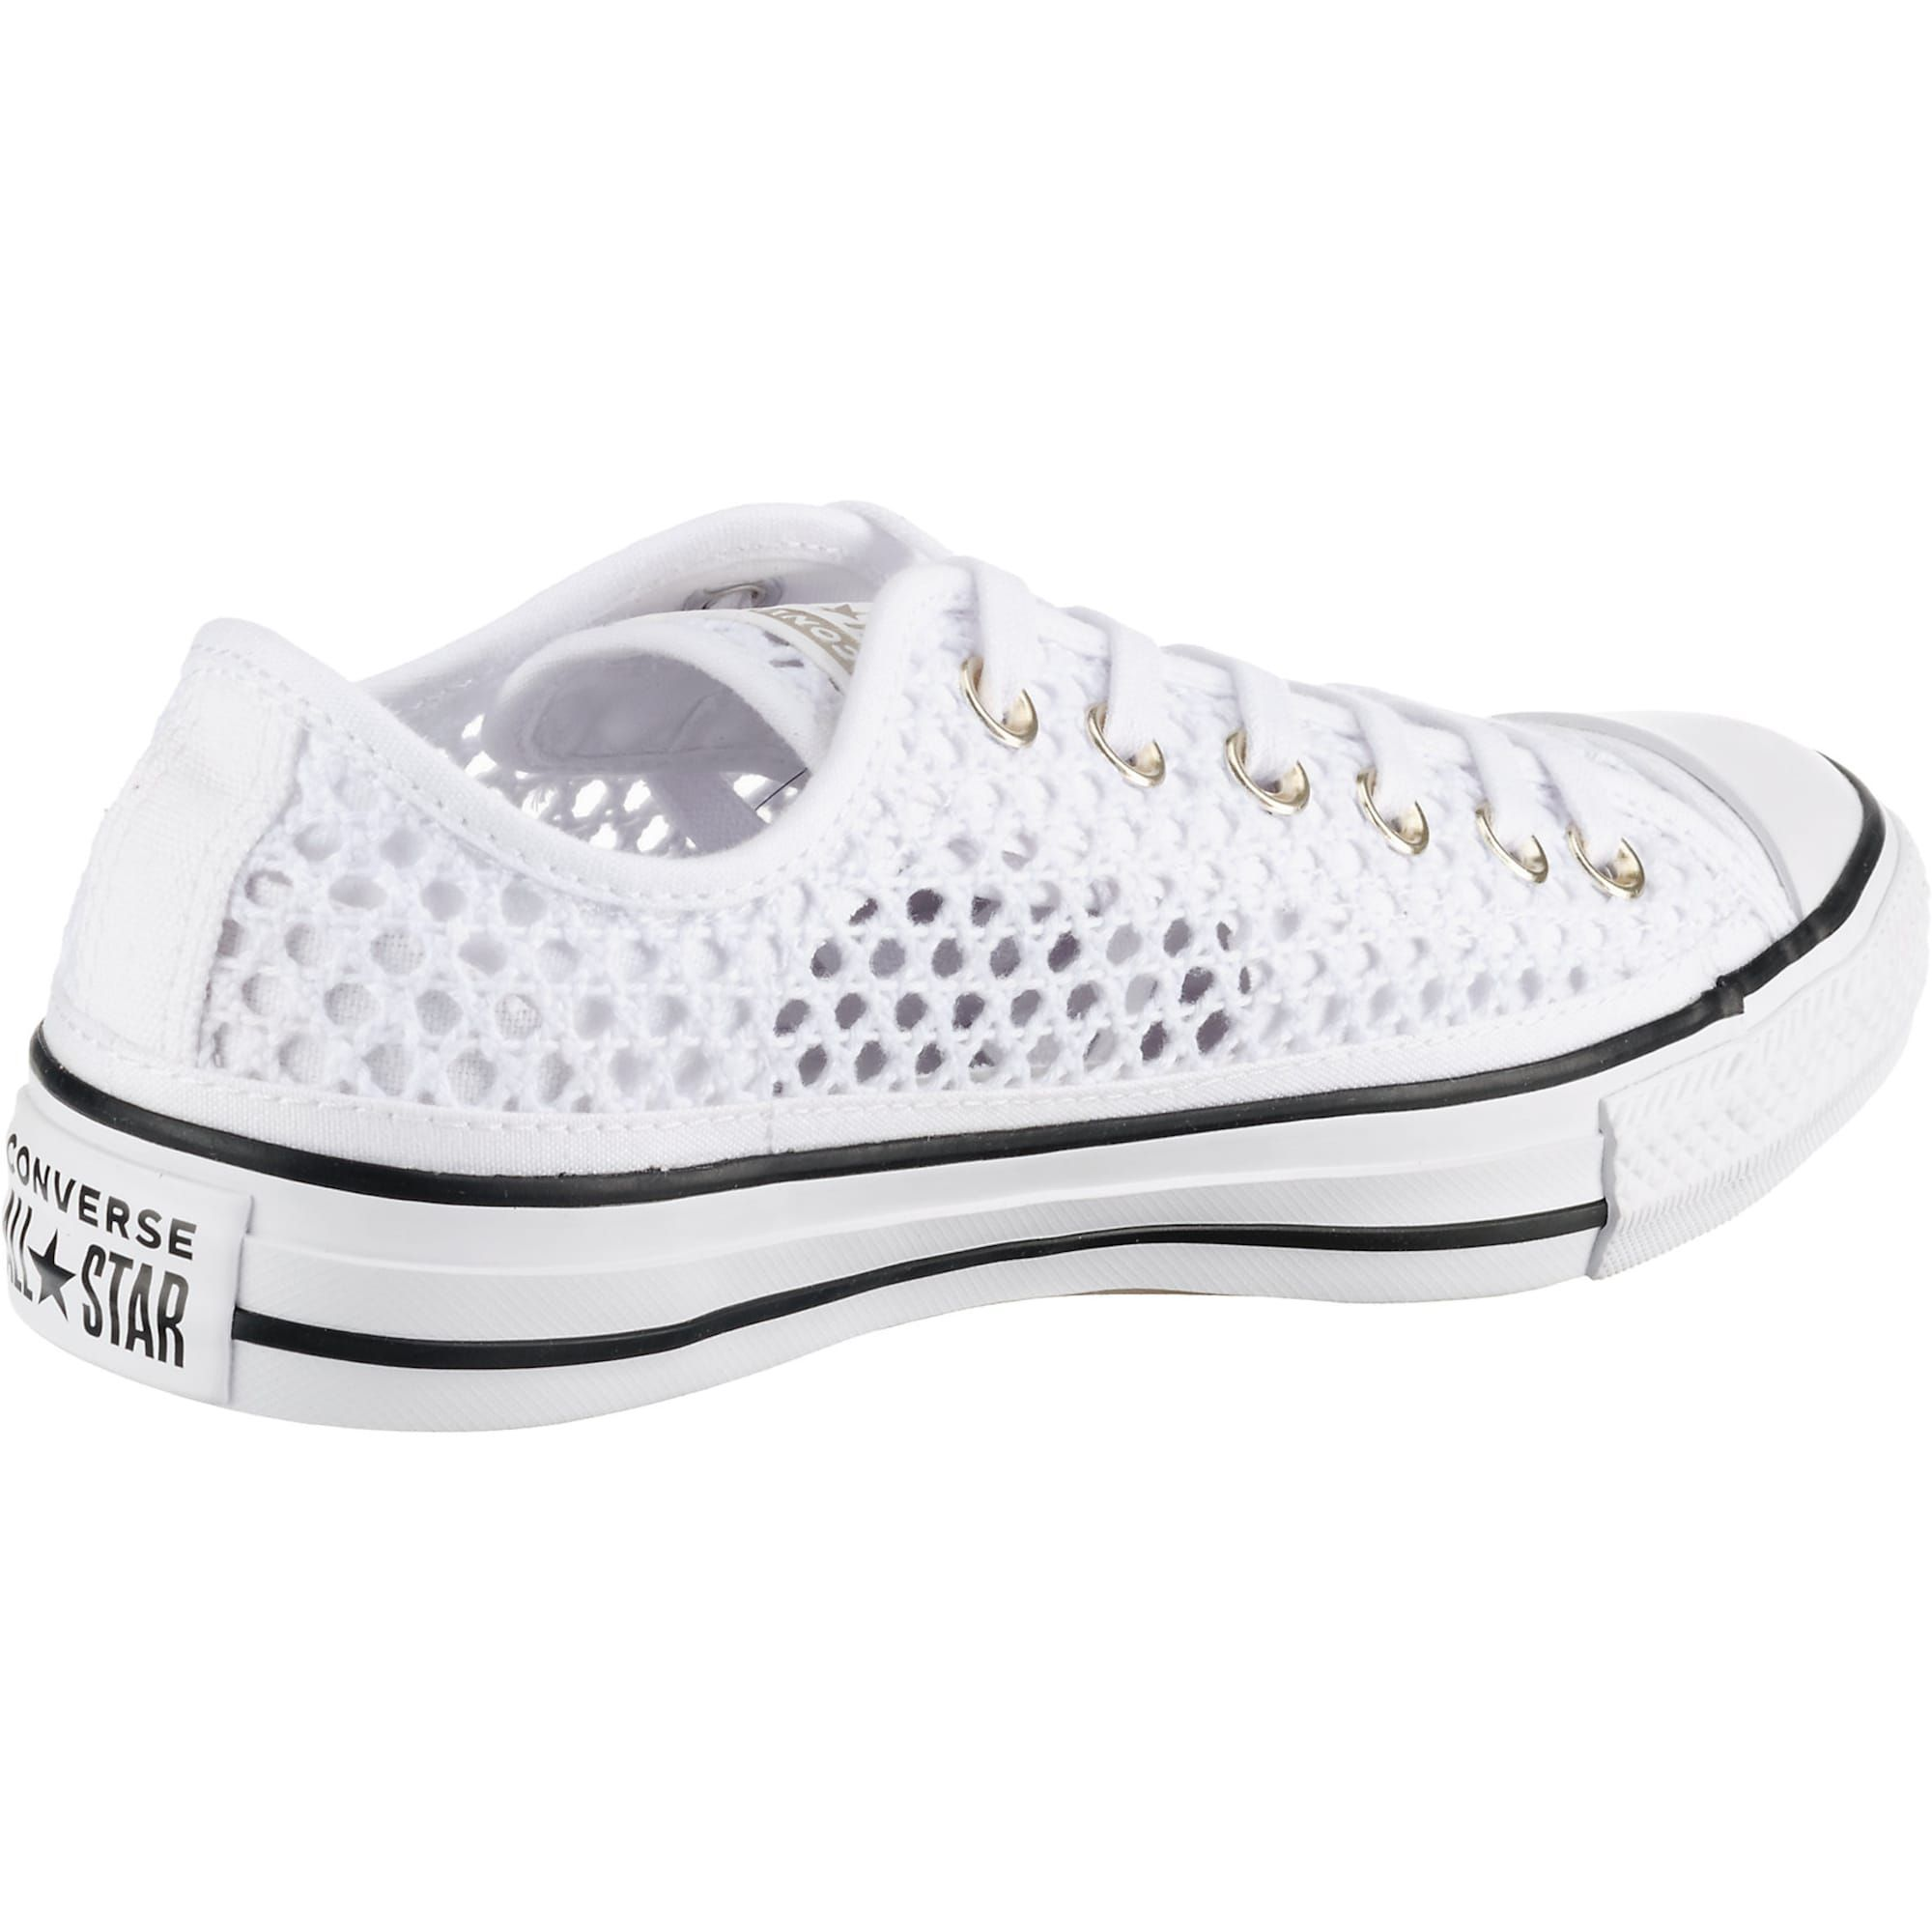 Converse Chuck Taylor All Star Ox Sneakers Low Damen Weiss Grosse 41 5 Converse Chuck Taylor Chuck Taylors Und Converse